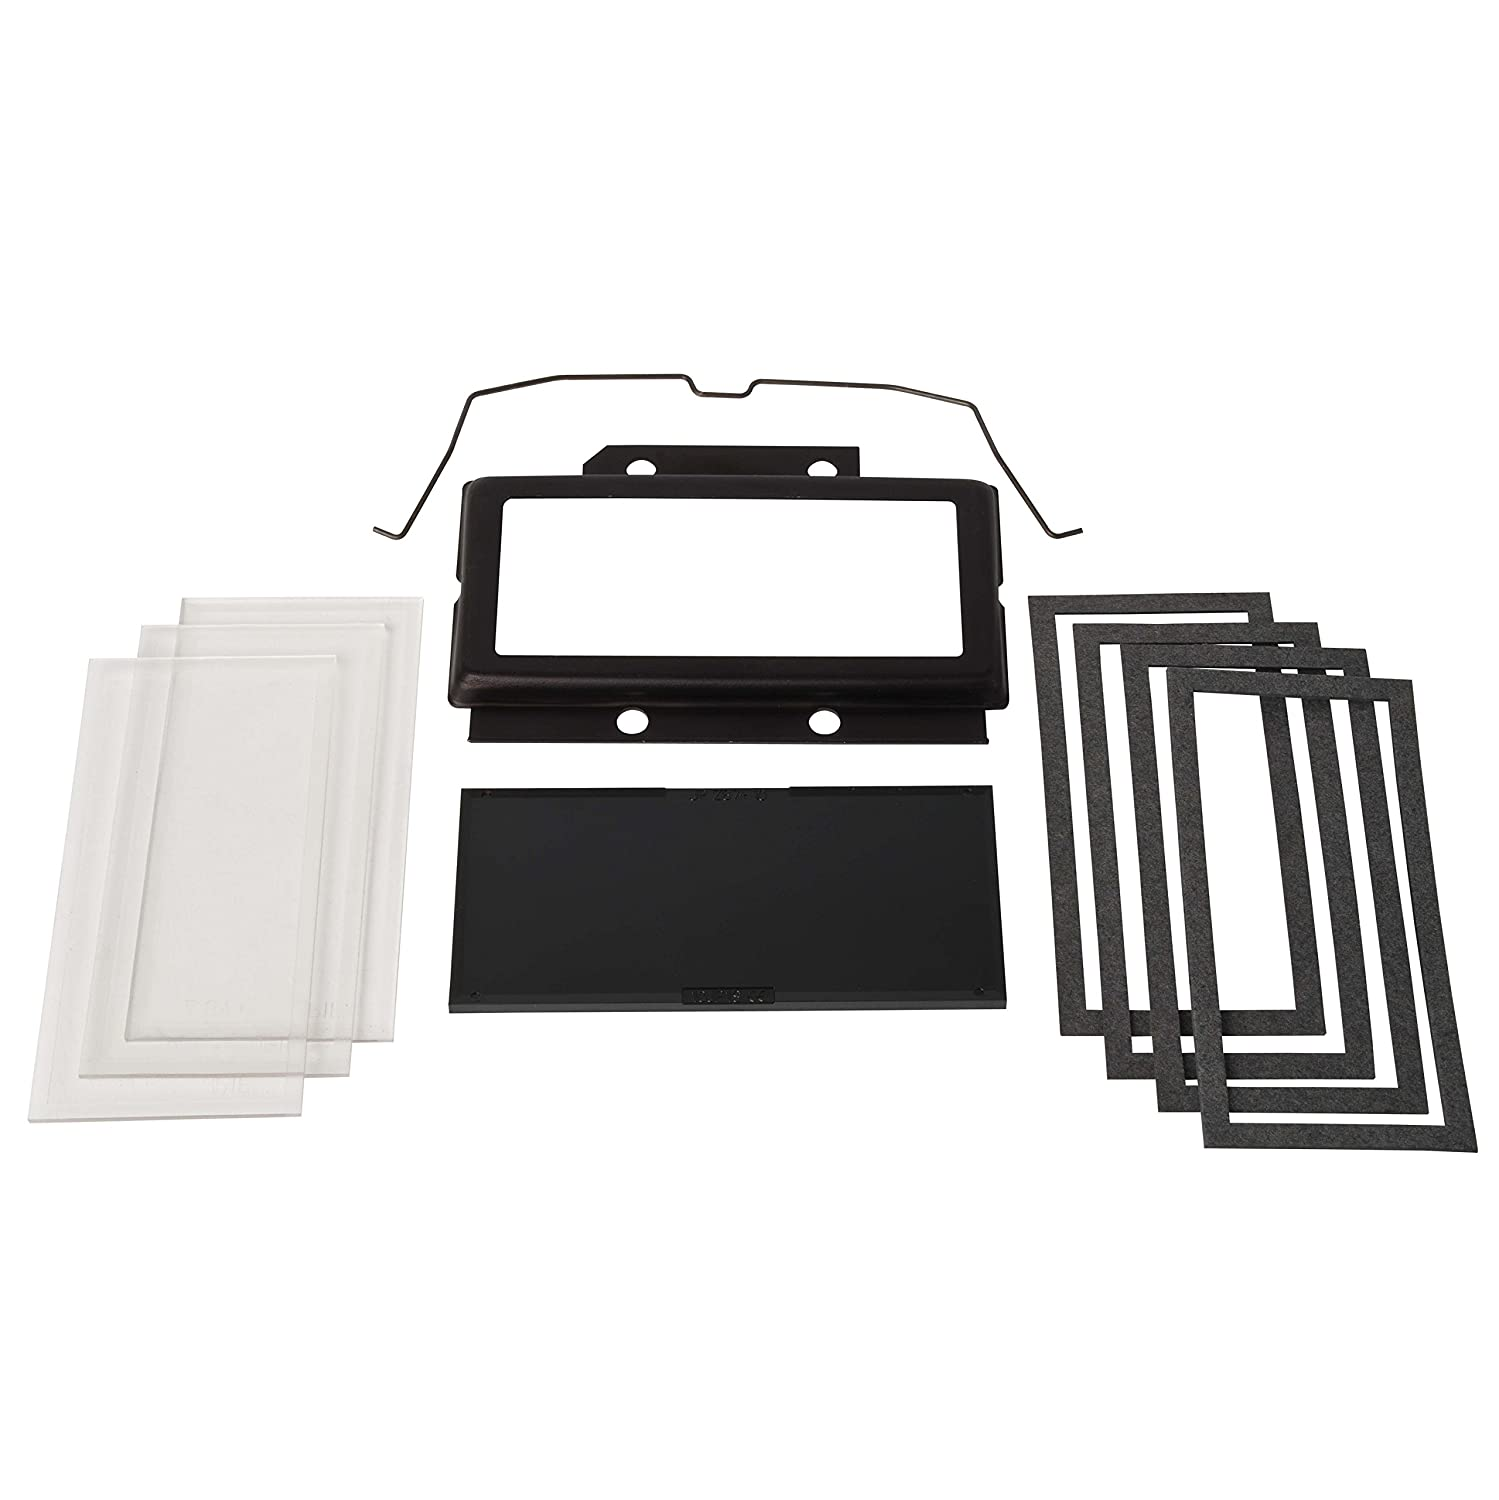 Jackson Safety Year-end gift Replacement Parts Kit for Outlet SALE 430P and Fiber 930P She